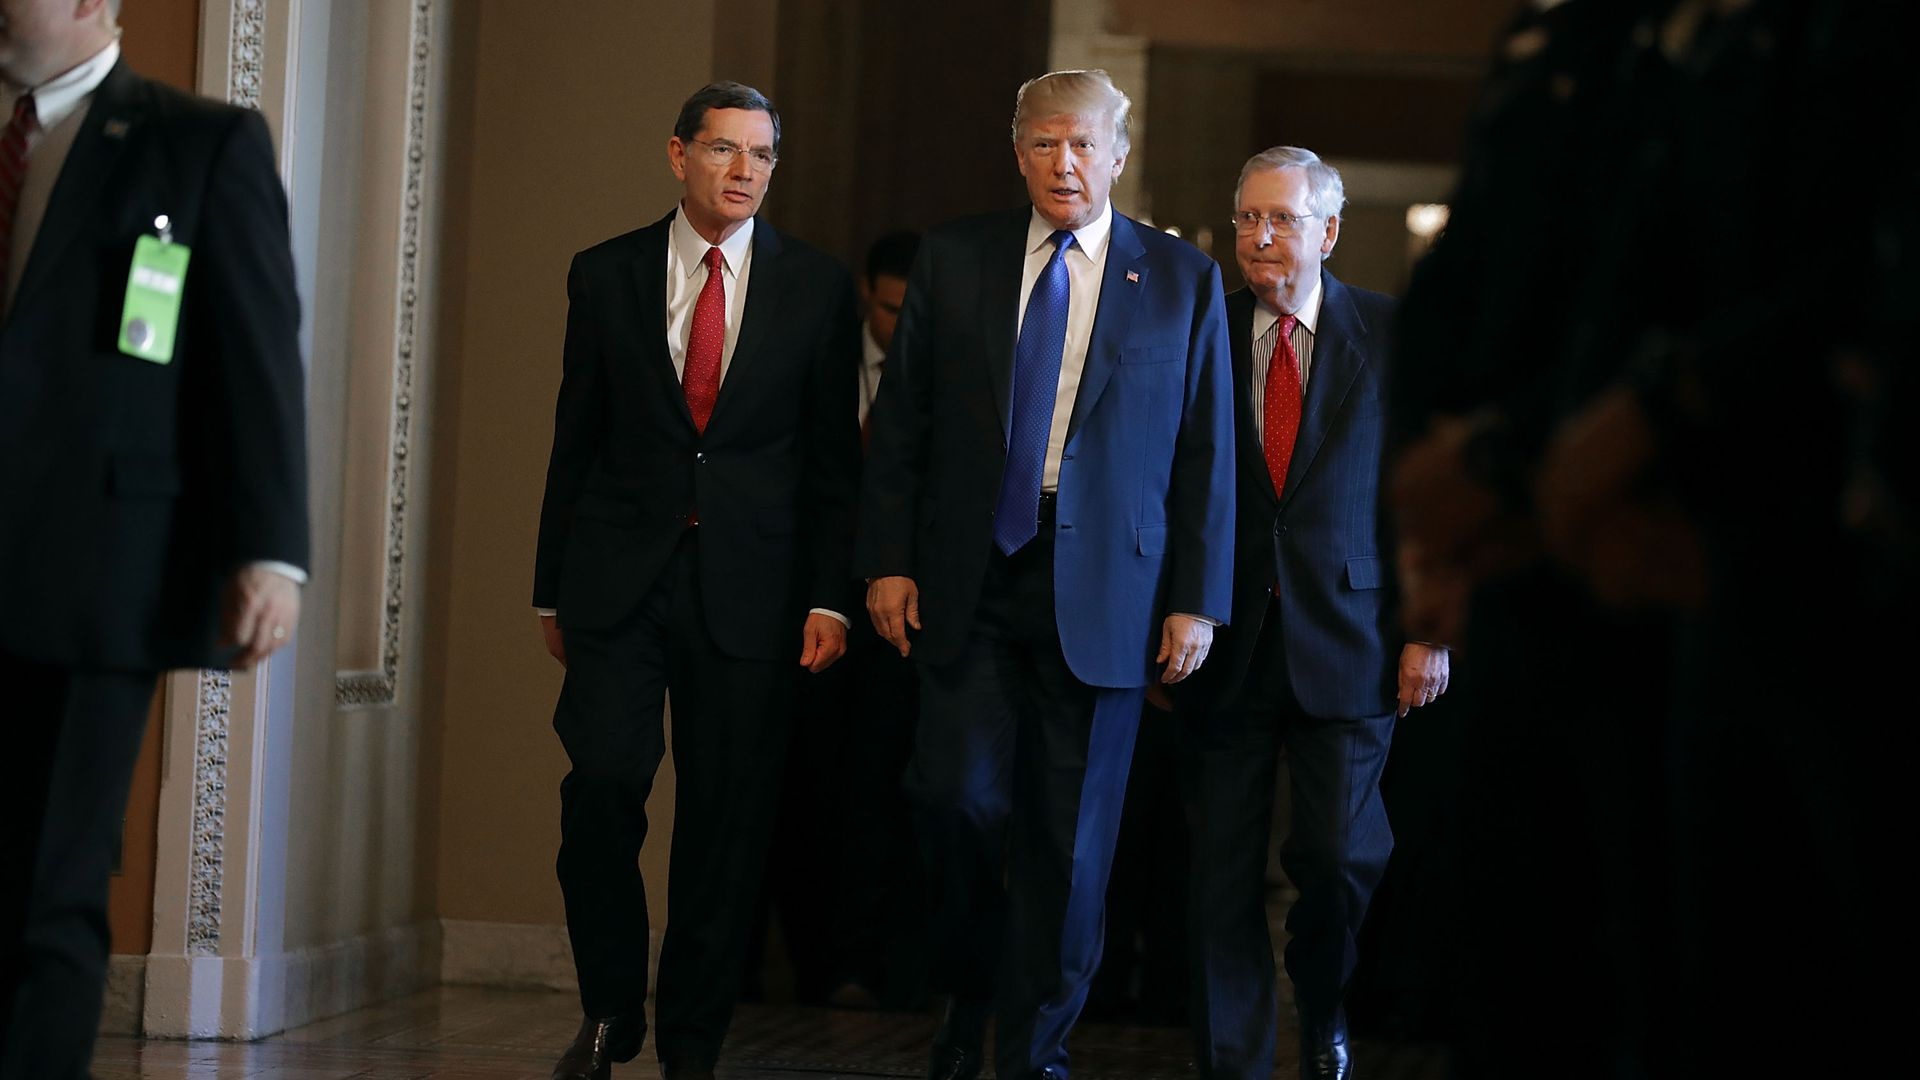 President Trump with Sens. John Barrasso and Mitch McConnell